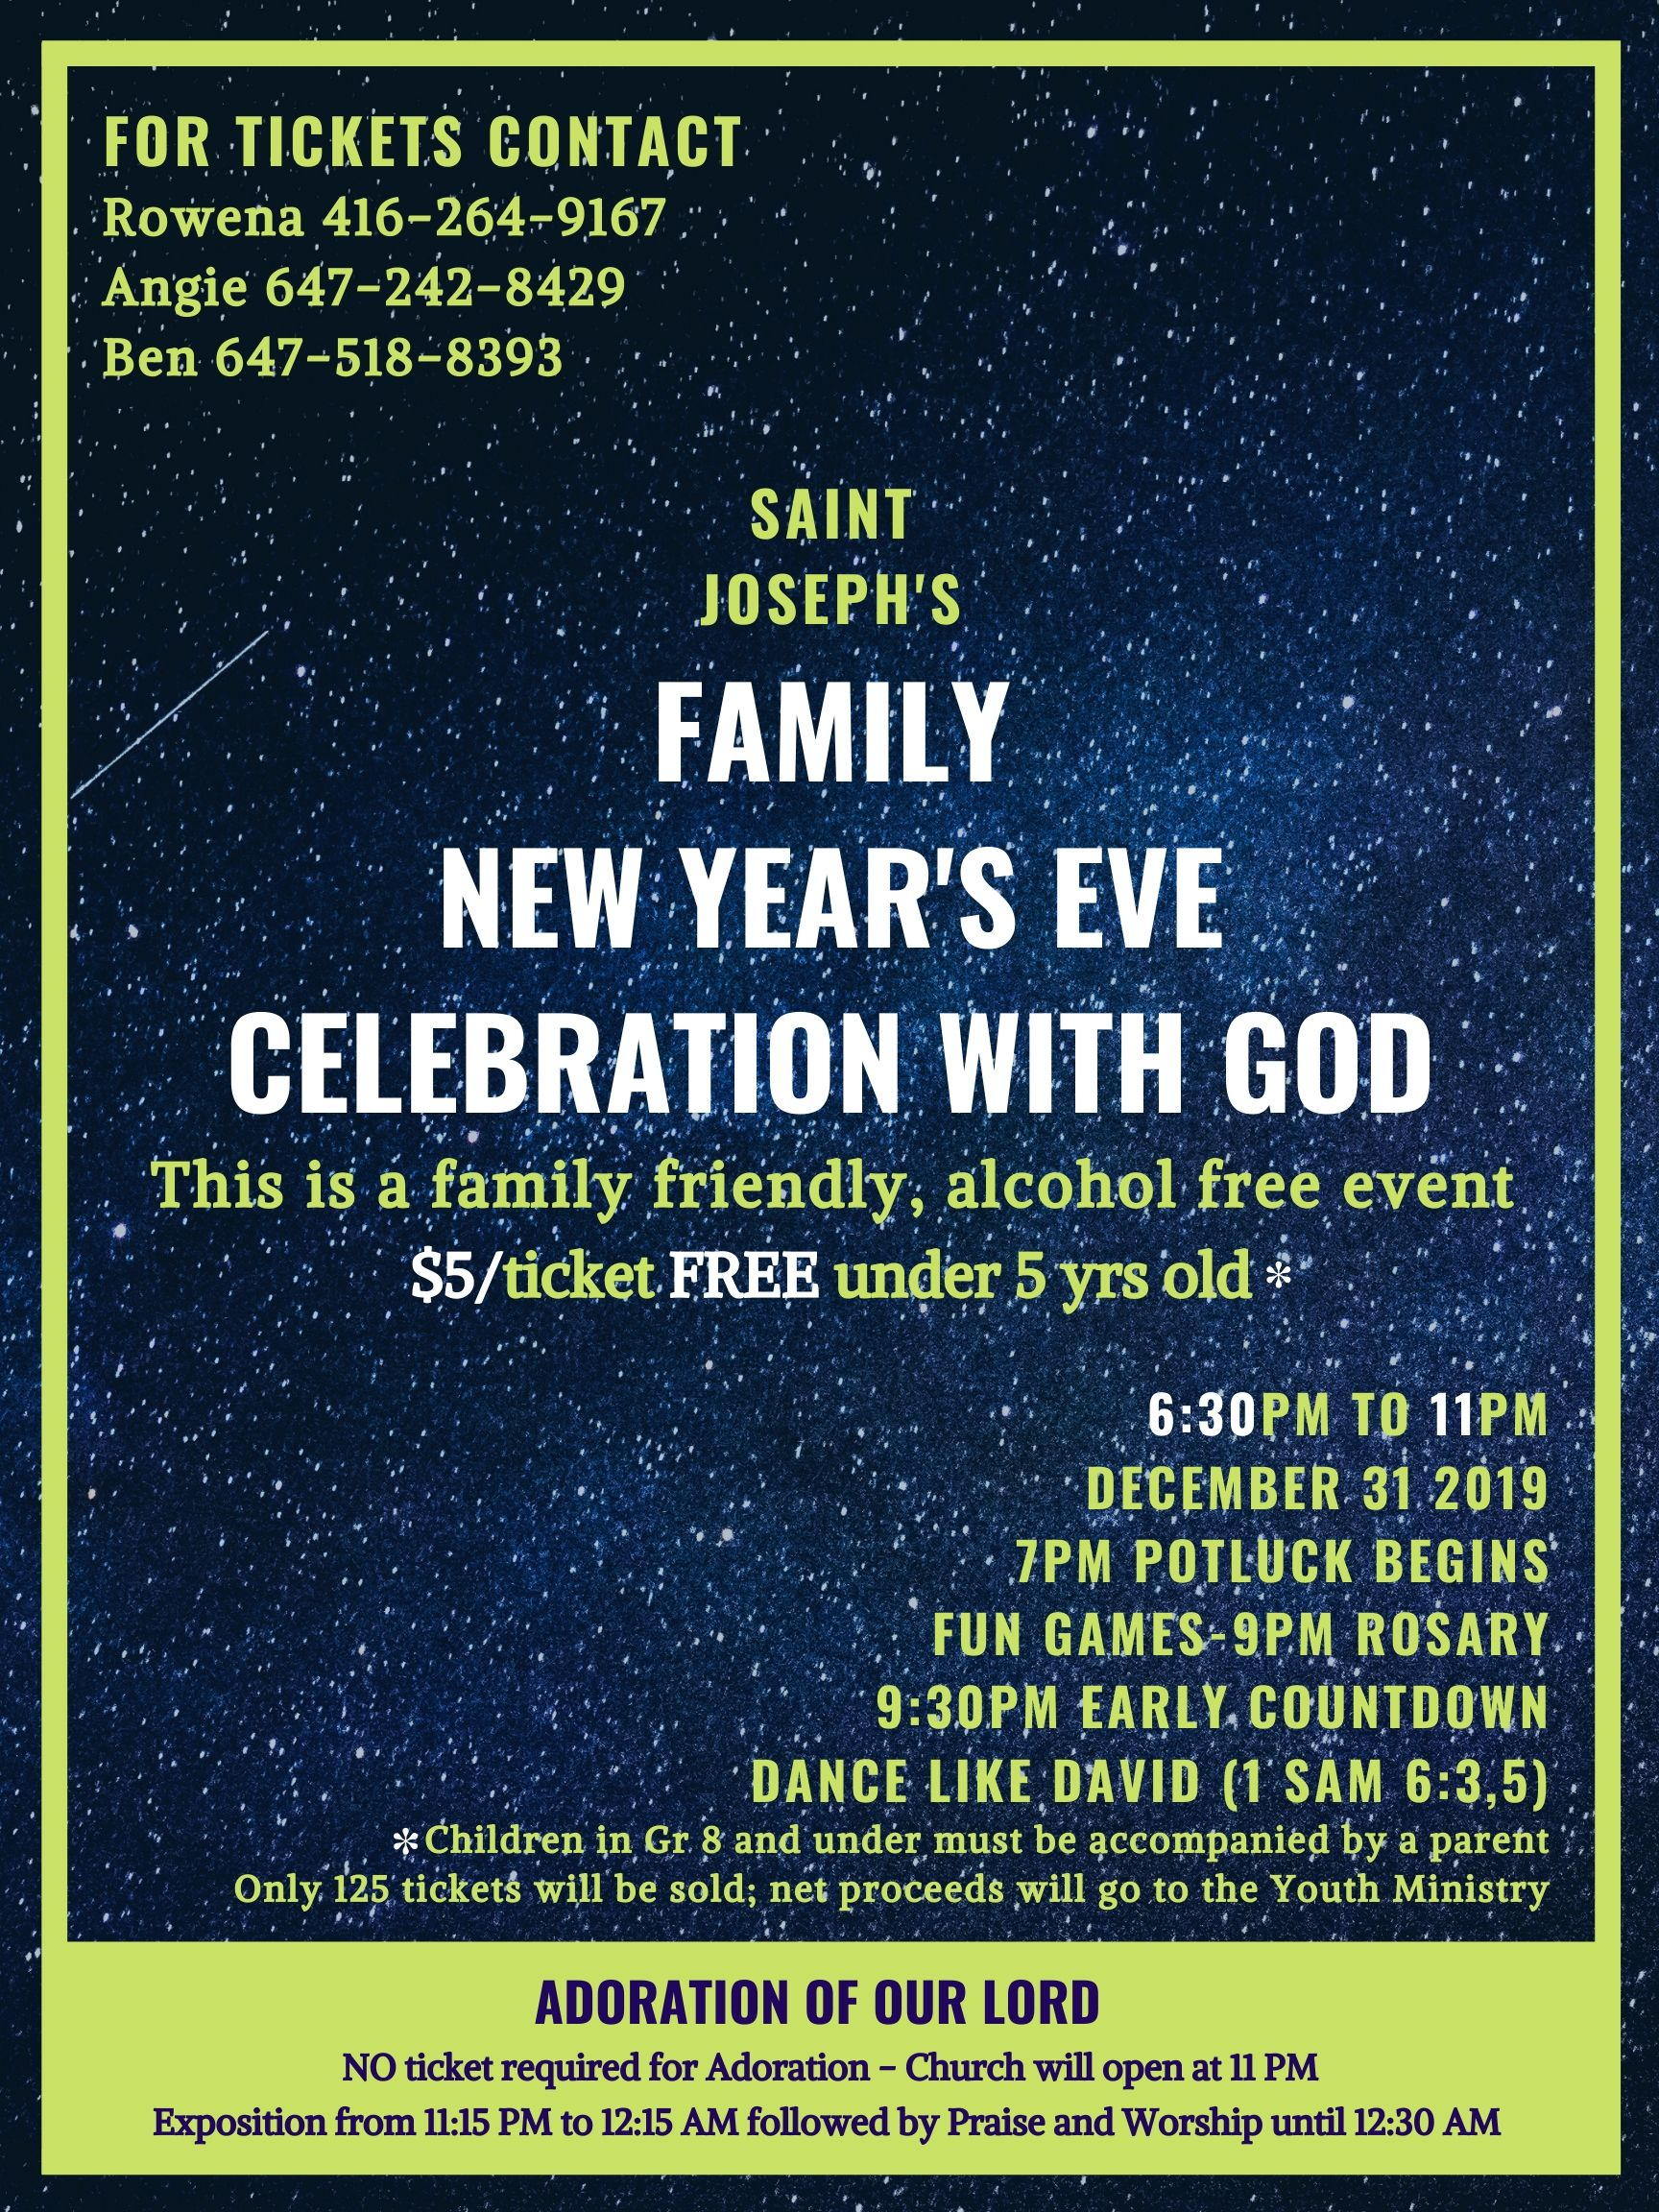 Saint Joseph's Family New Years Eve Celebration with God. This is a family-friendly, alcohol free event on December 31st 2019 from 6:30 PM to 11:00 PM.